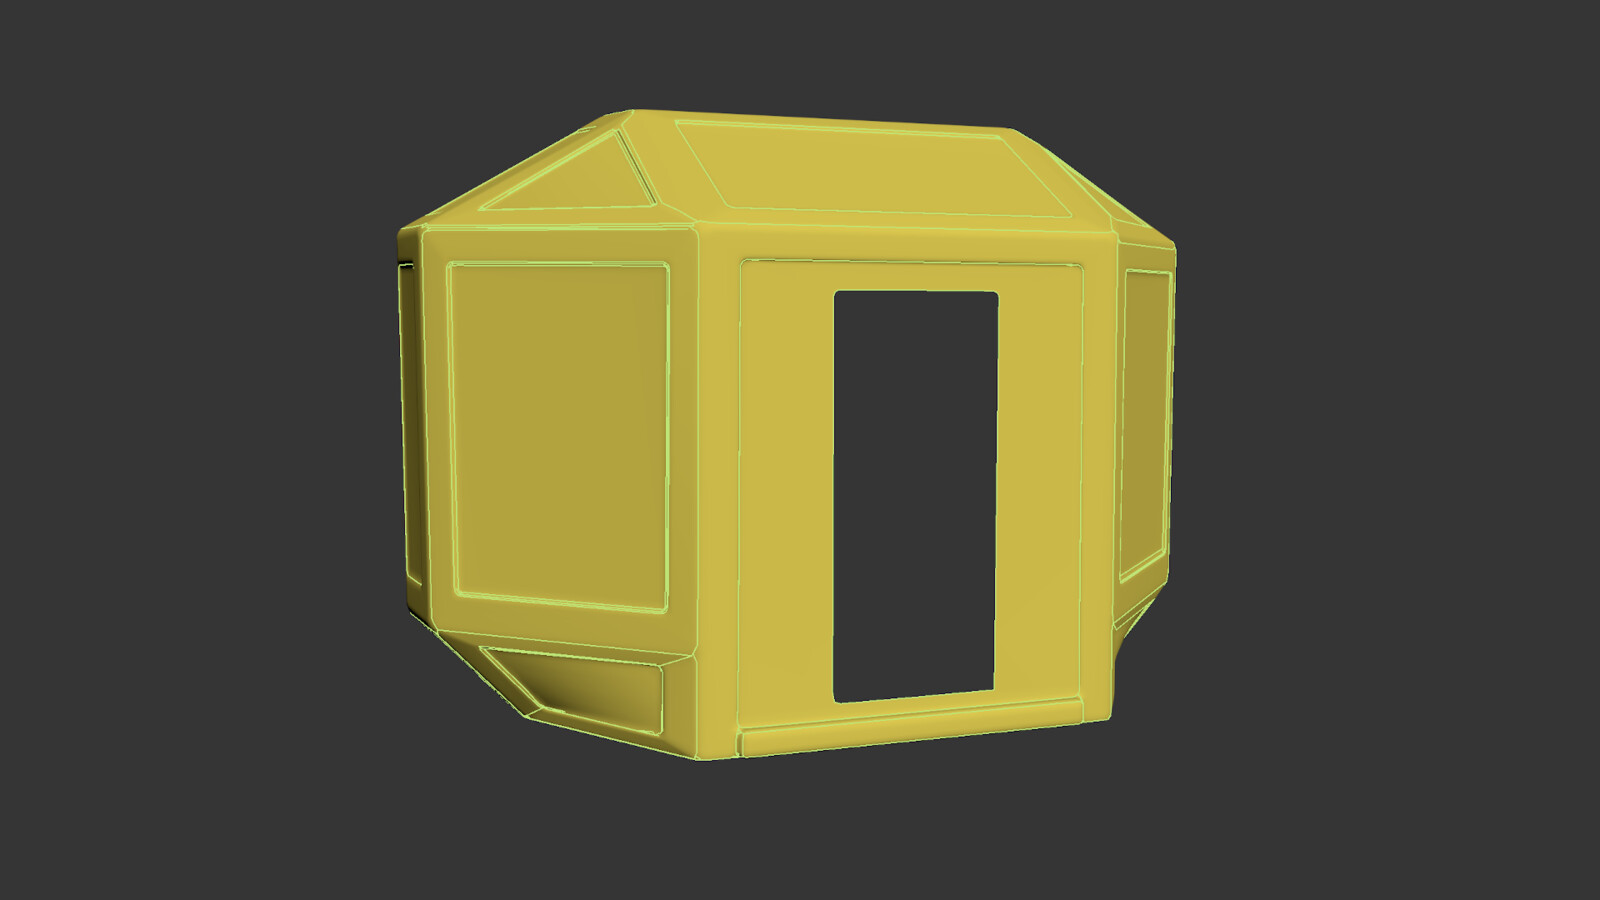 Importing of bunker in 3ds max for Uving.